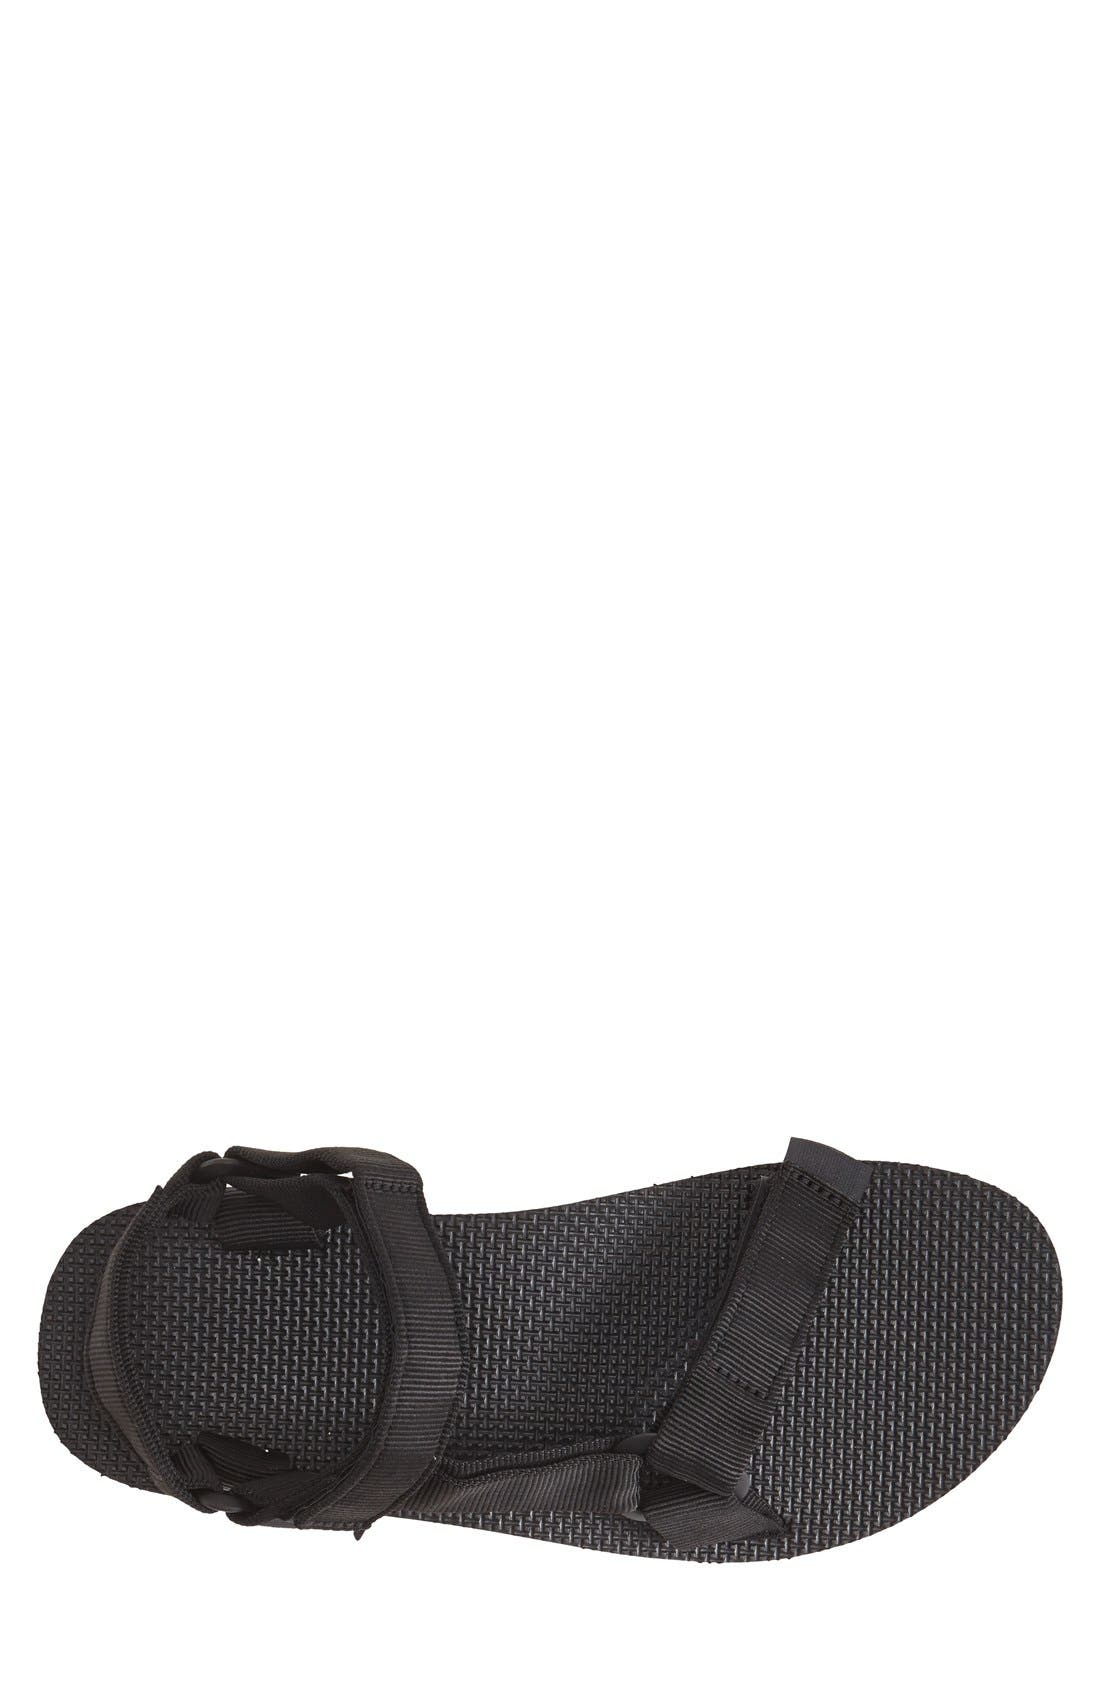 Alternate Image 3  - Teva 'Original Universal Urban' Sandal (Men)